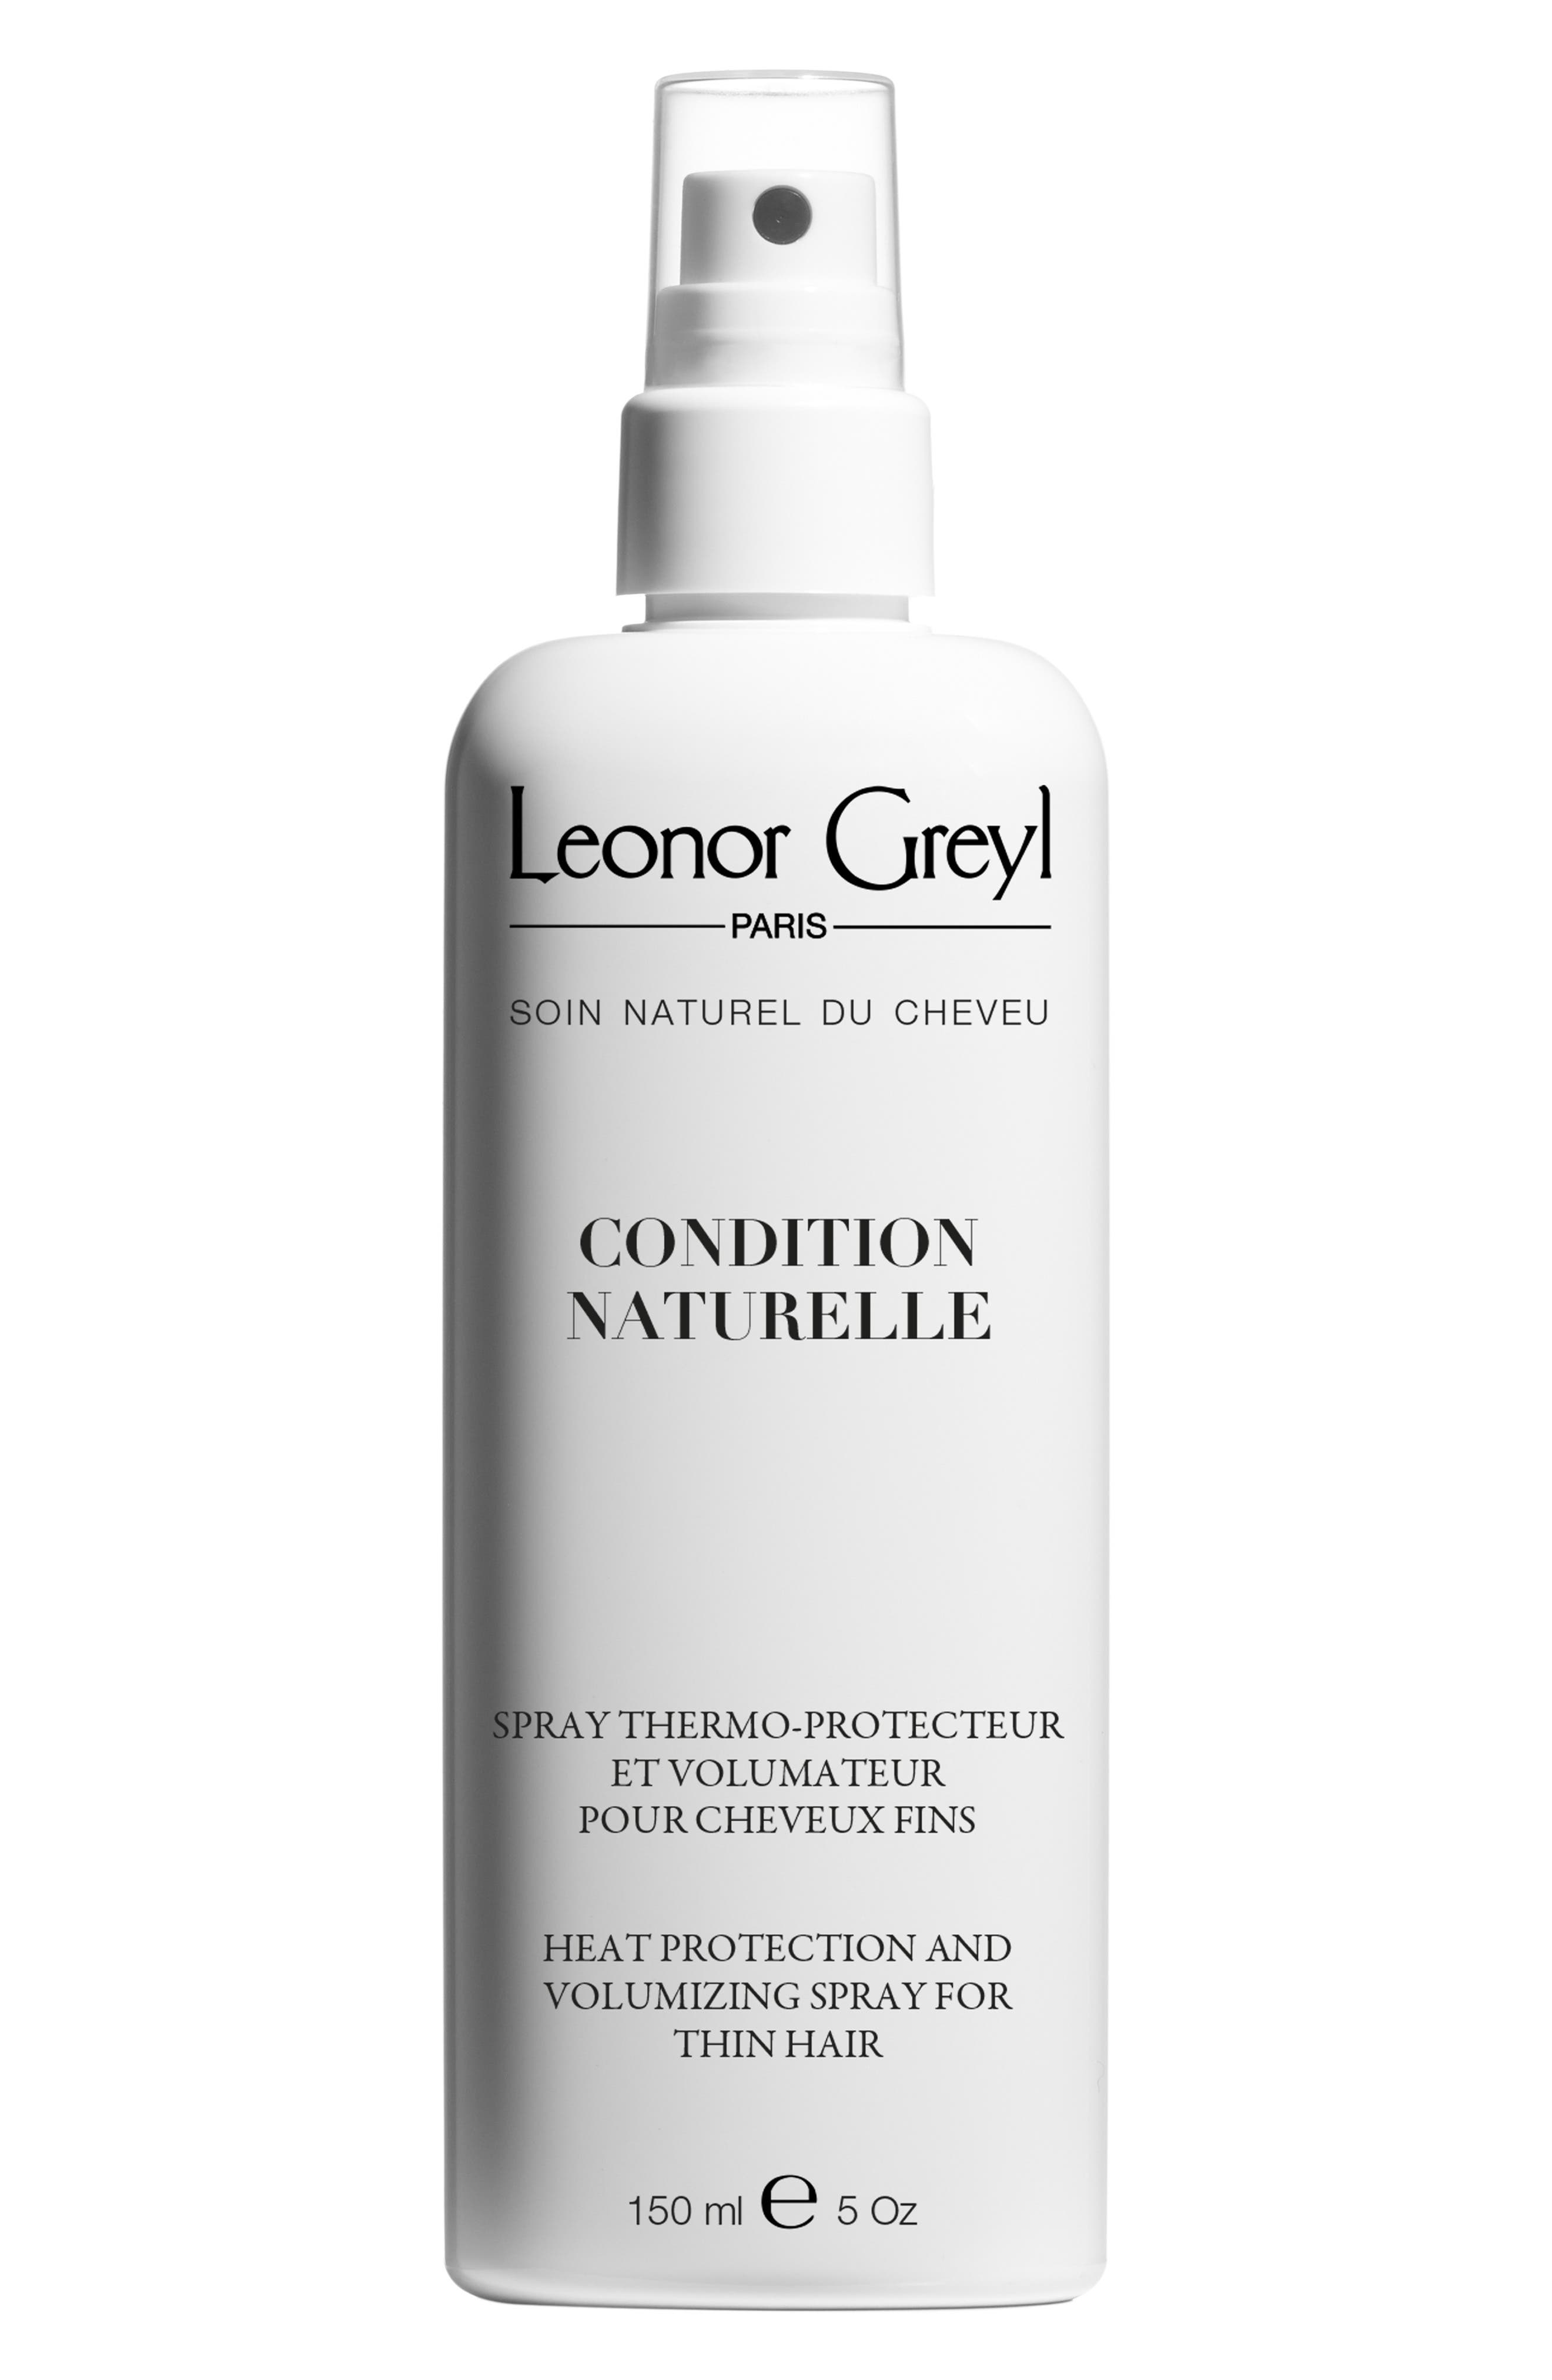 Condition Naturelle Heat Protective Styling Spray For Thin Hair